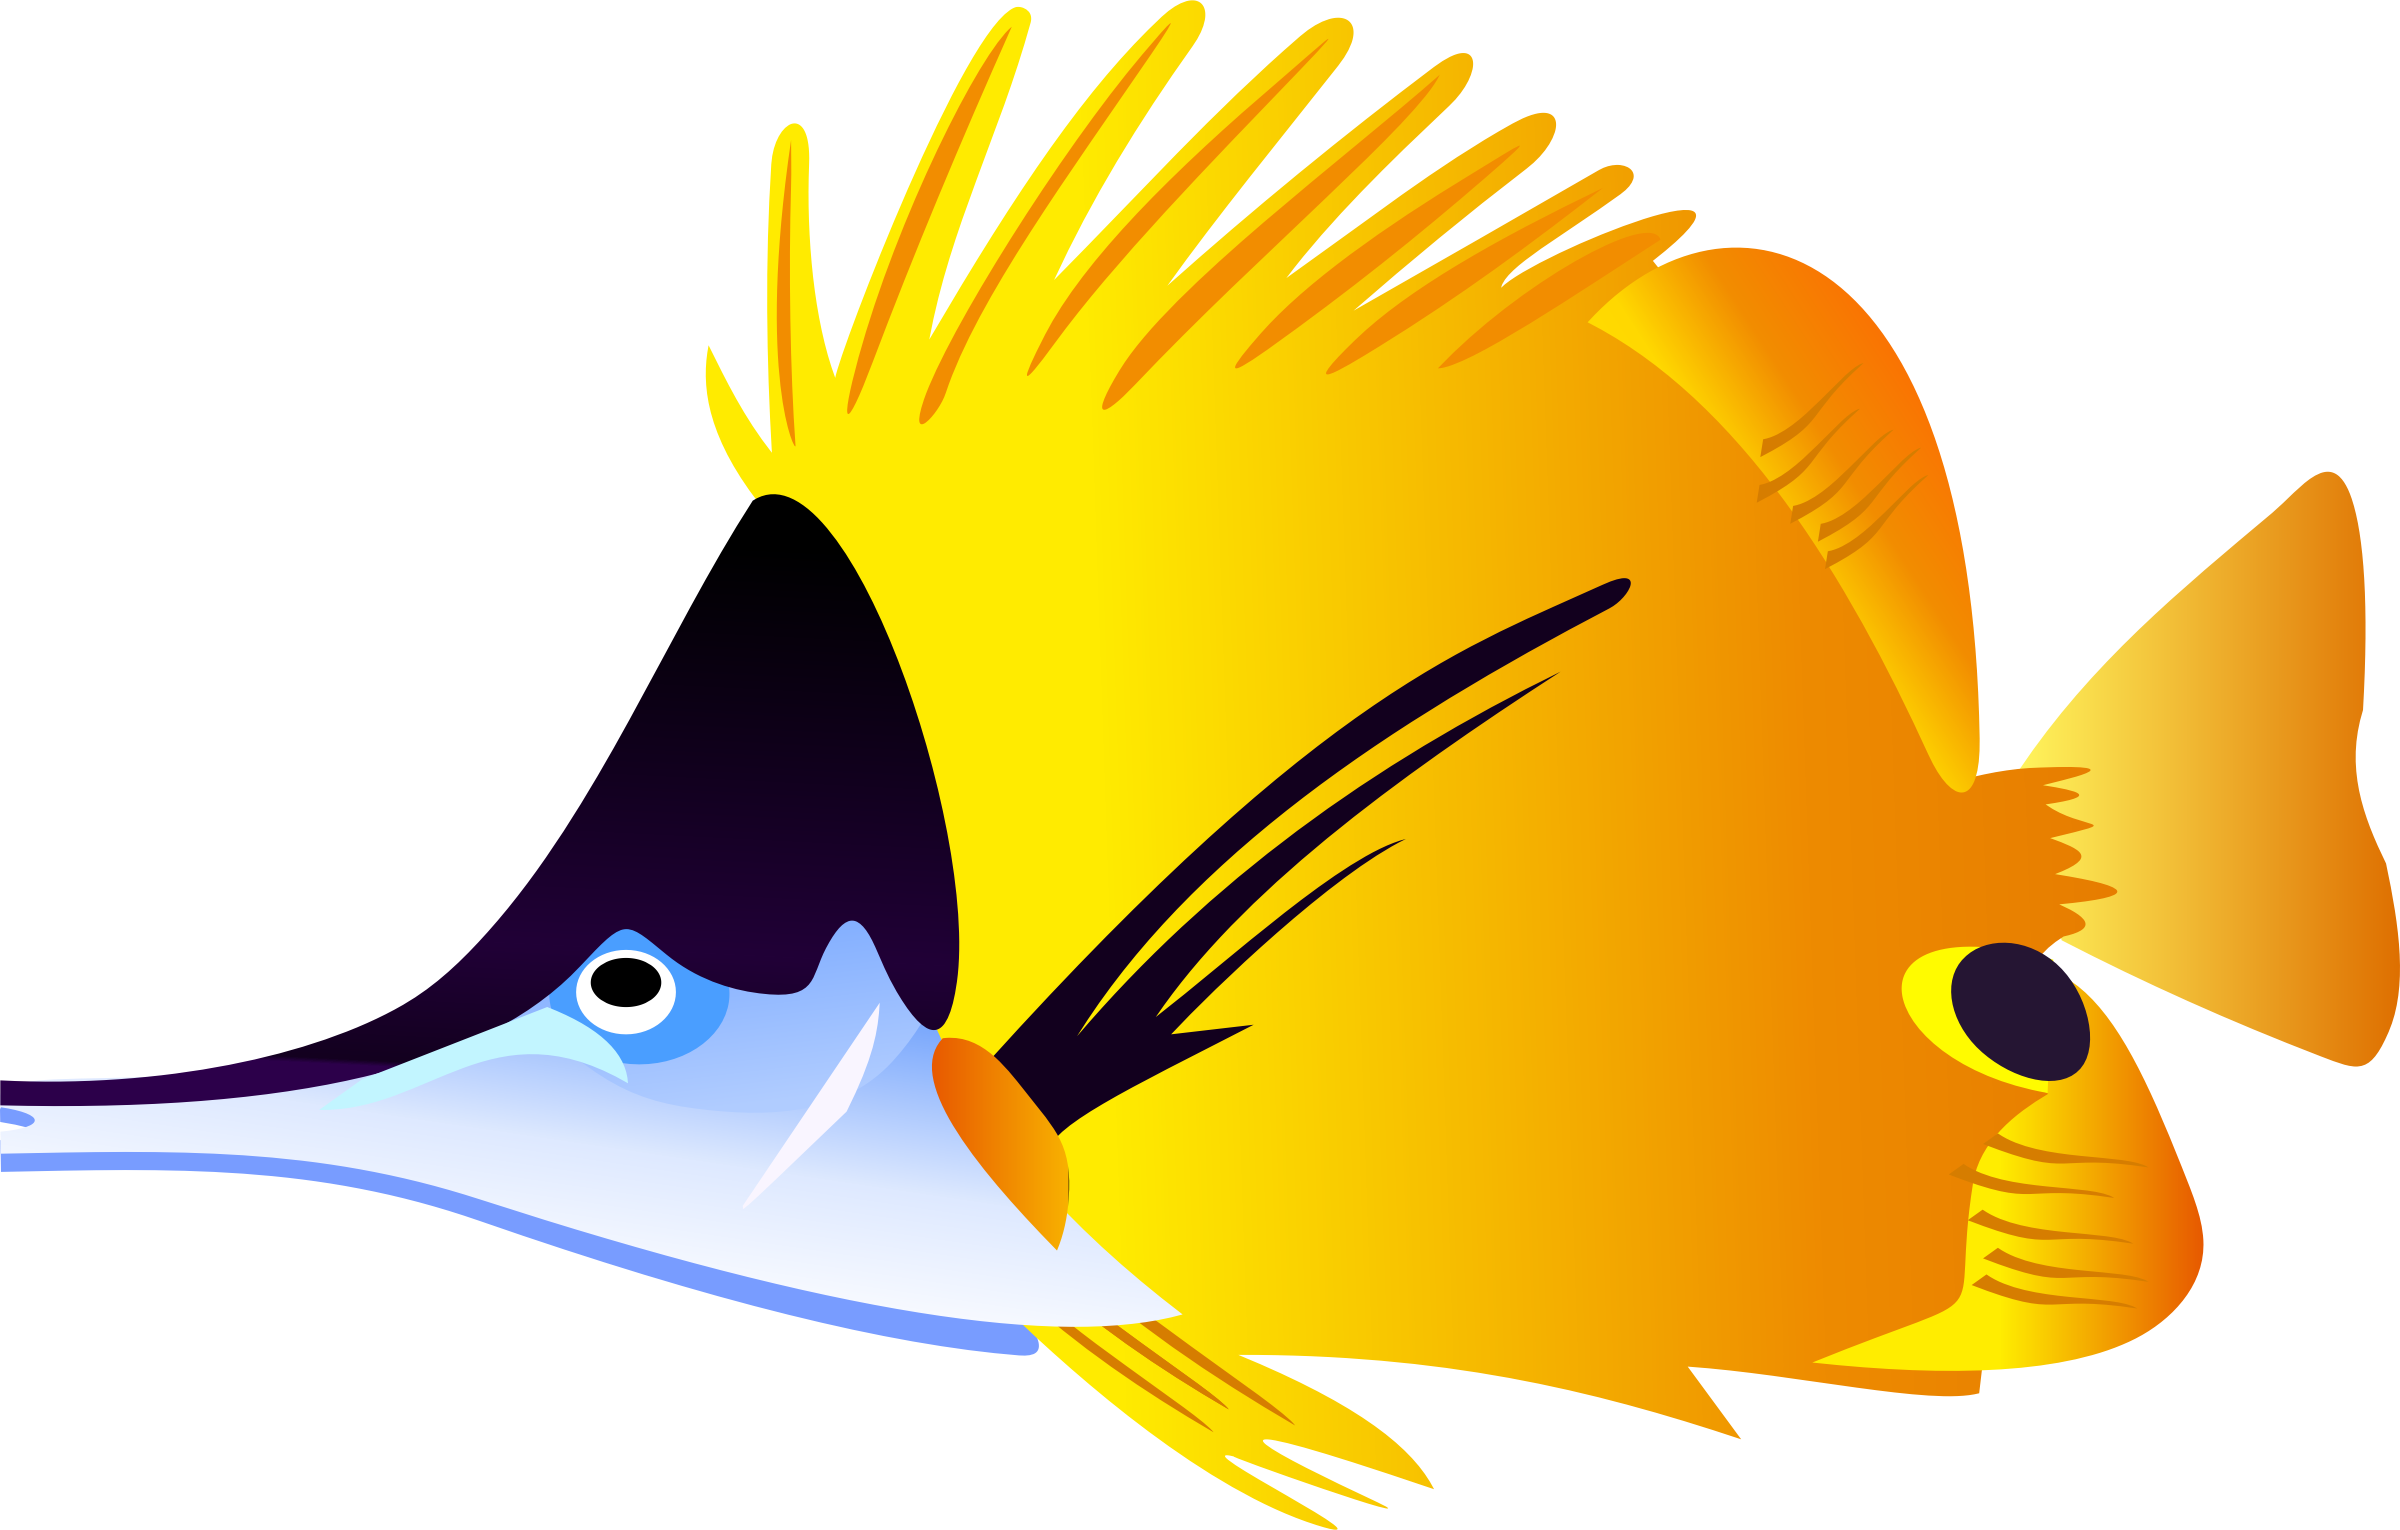 Realistic cool fish clipart images graphic library download Saltwater Fish Clipart at GetDrawings.com | Free for personal use ... graphic library download